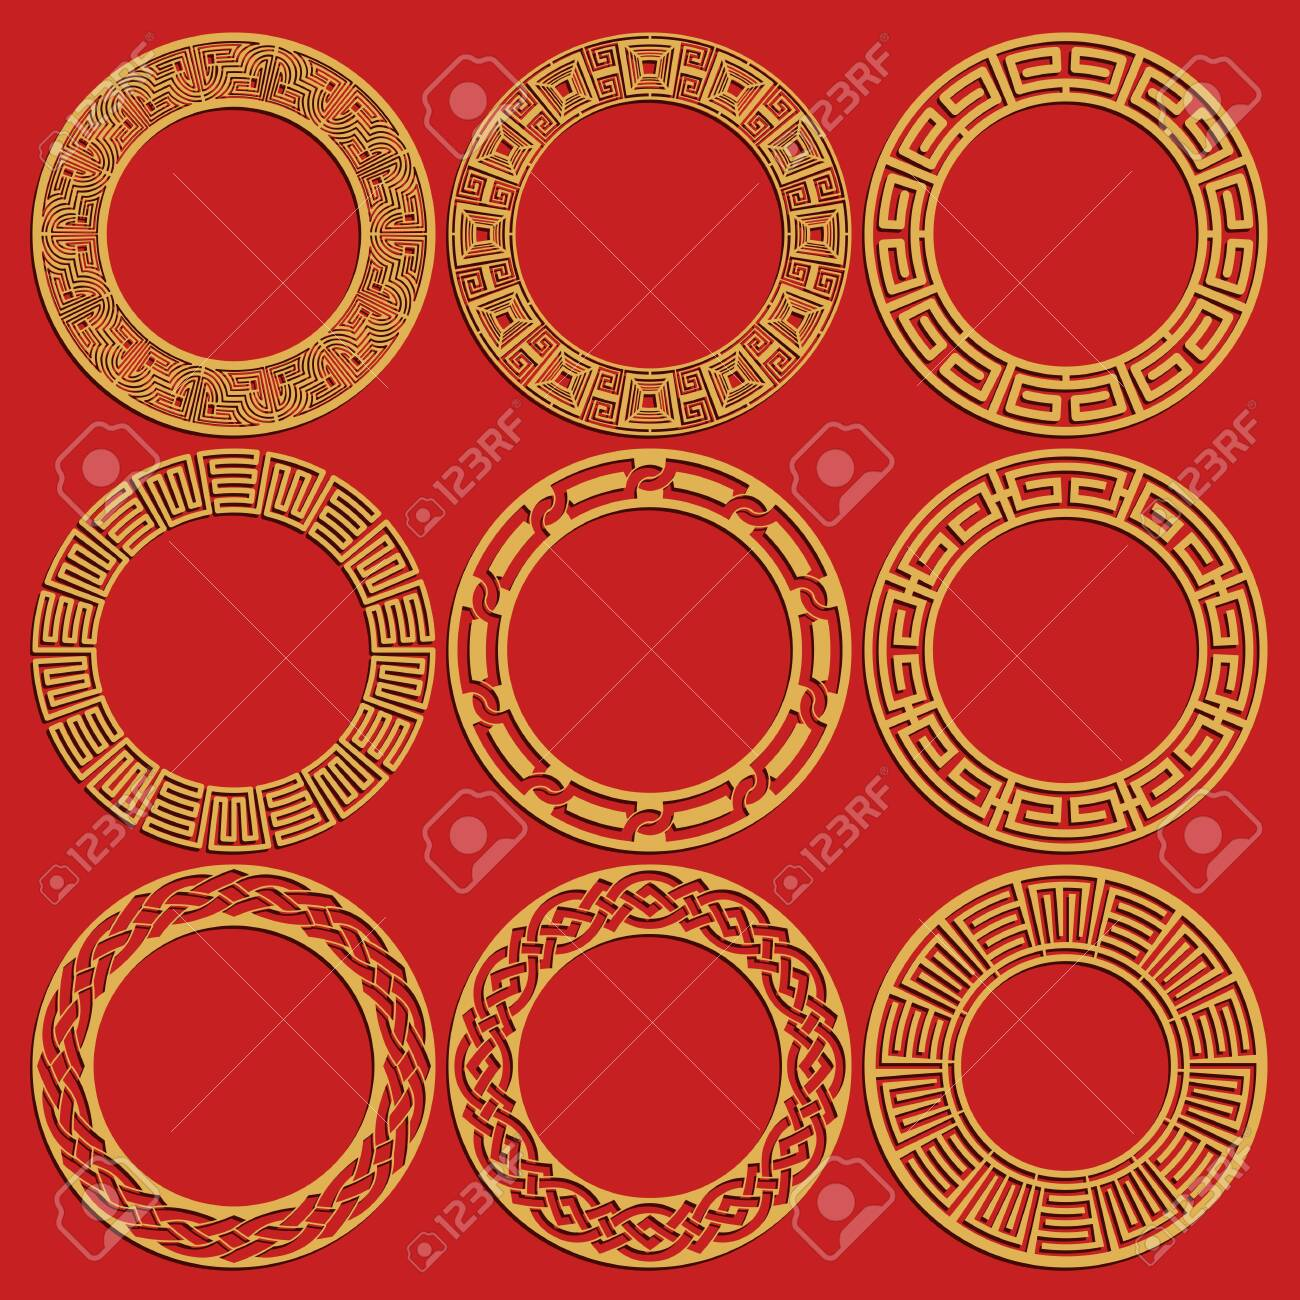 Round chinese frames set isolated on red background. Geometric circular oriental ornaments. Vector illustration - 137351348